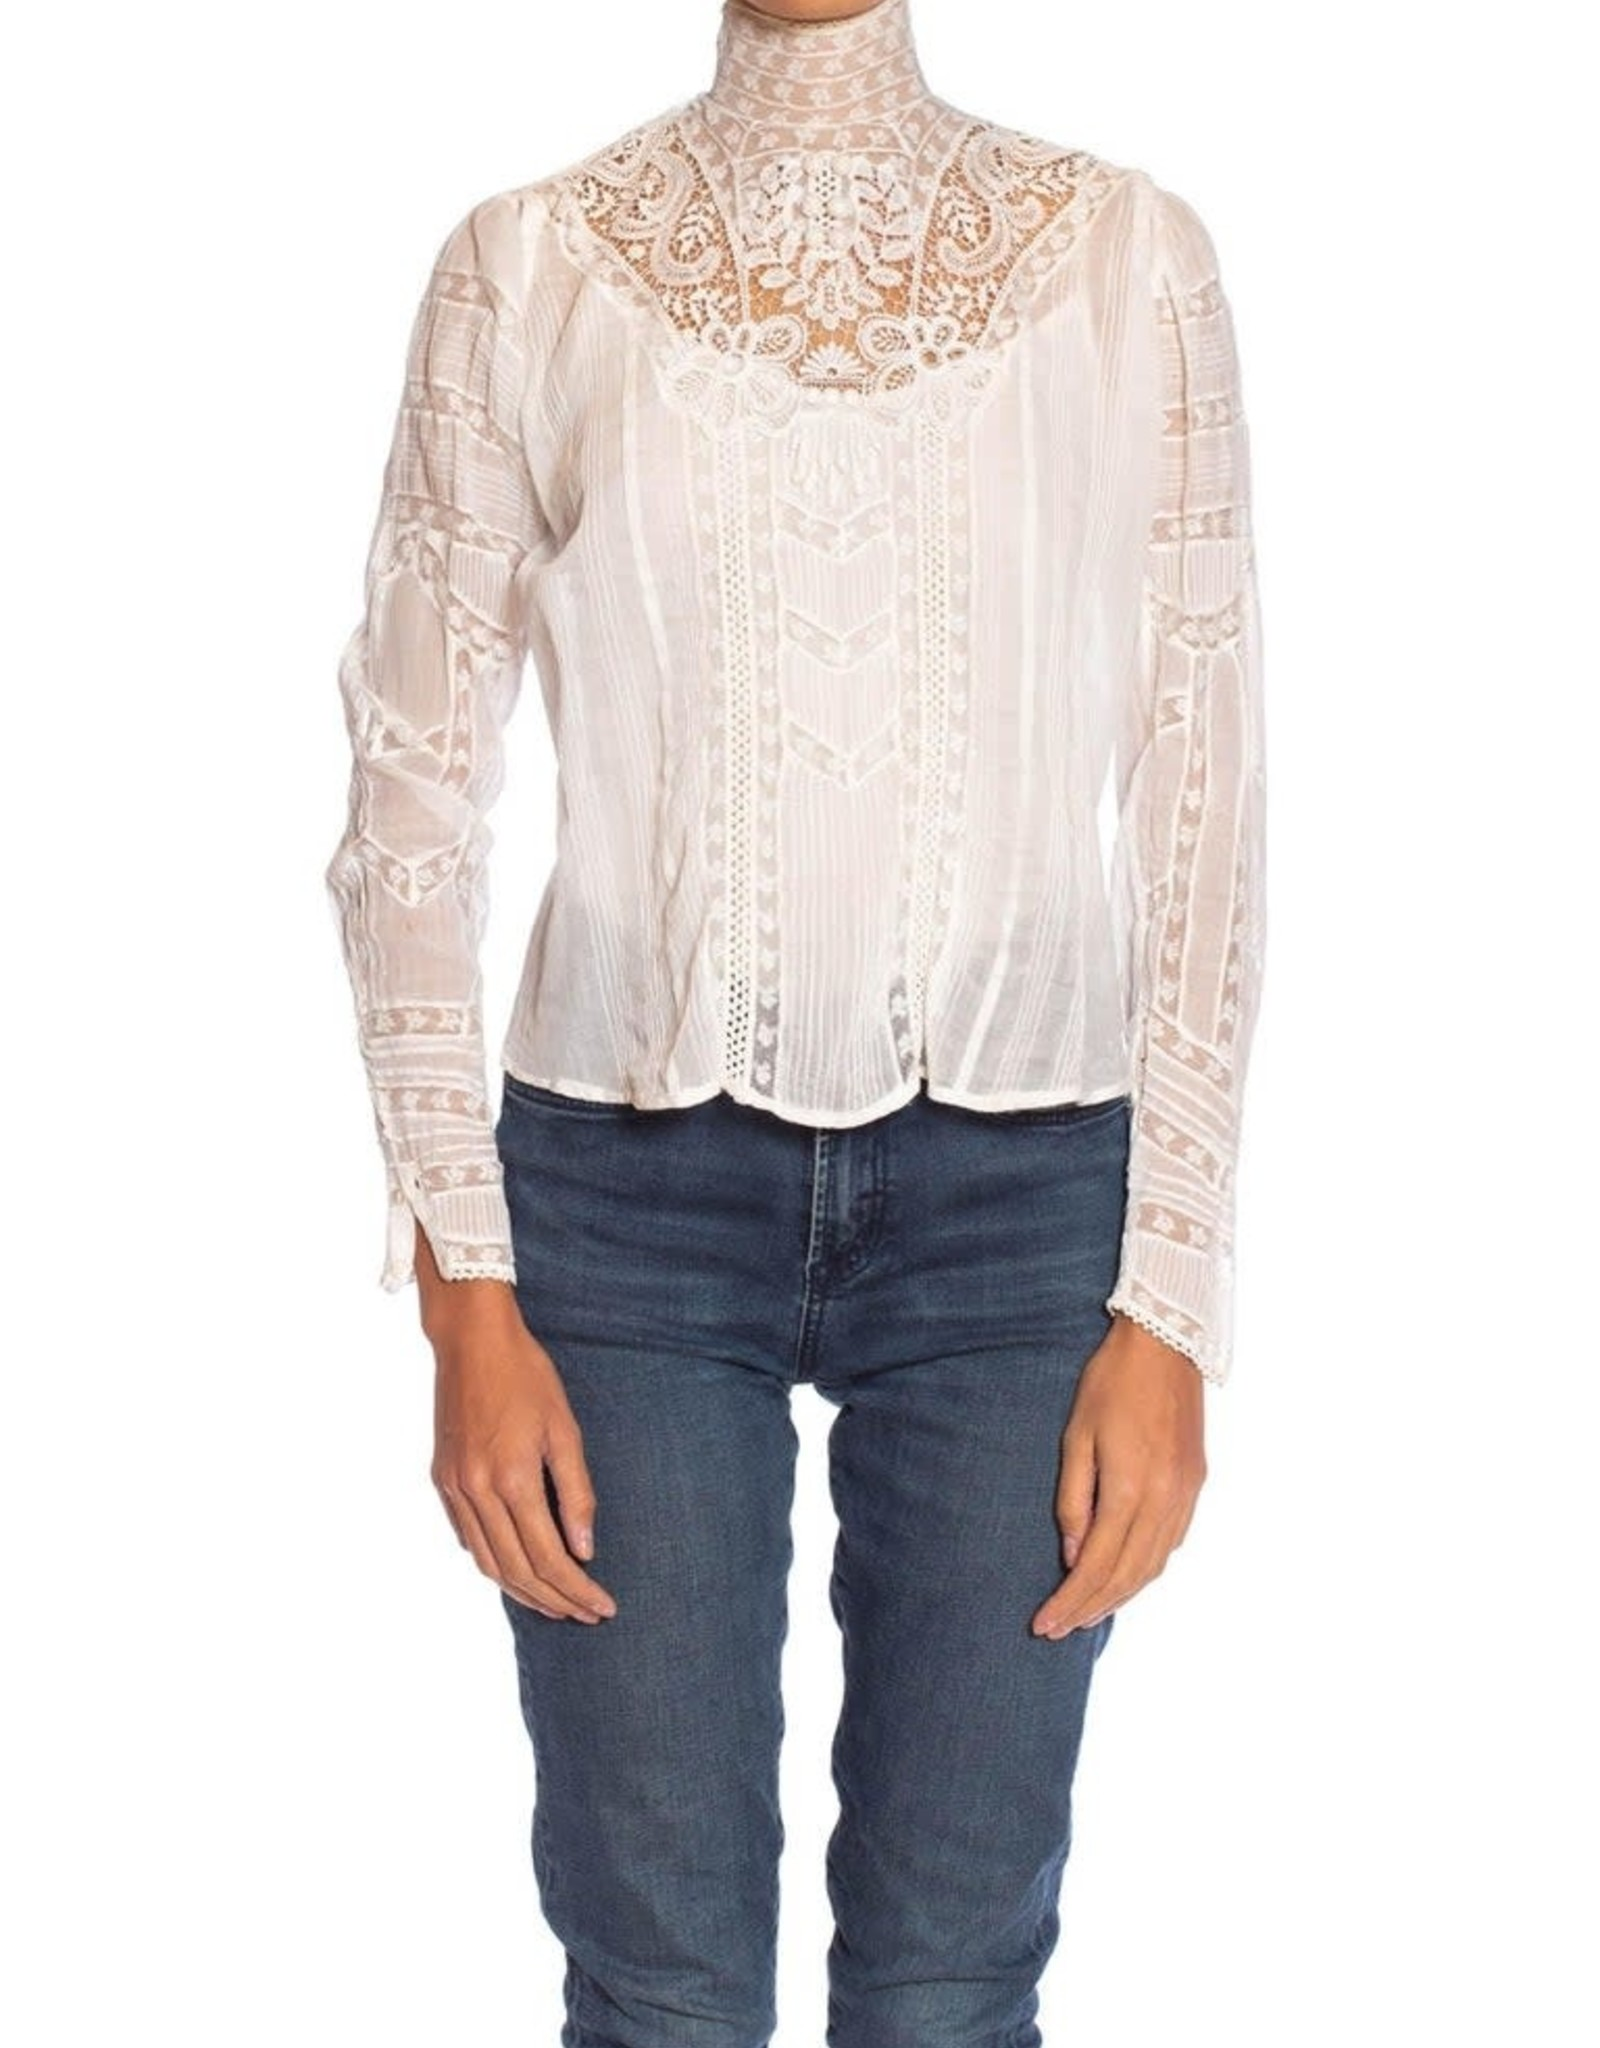 Wyld Blue Vintage Victorian White Organic Cotton Voile & Floral Lace Swan Neck Blouse w Irish Crochet Styled Details WLT9ON36002